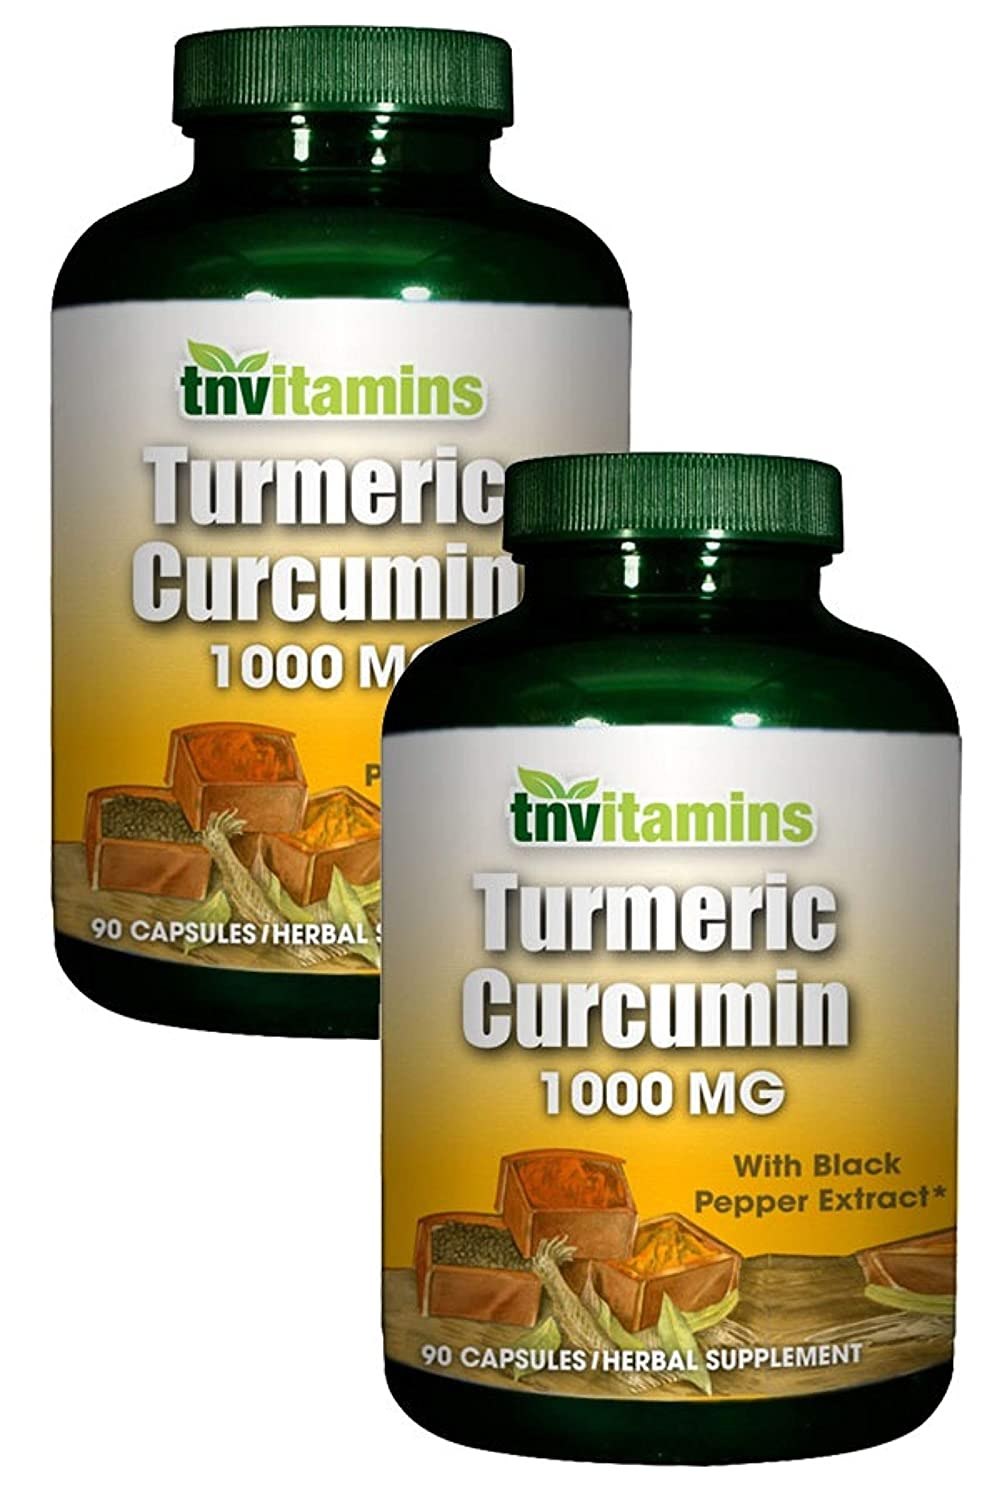 Turmeric Curcumin 1000 Mg with Black Pepper by TNVitamins -180 Capsules 2×90